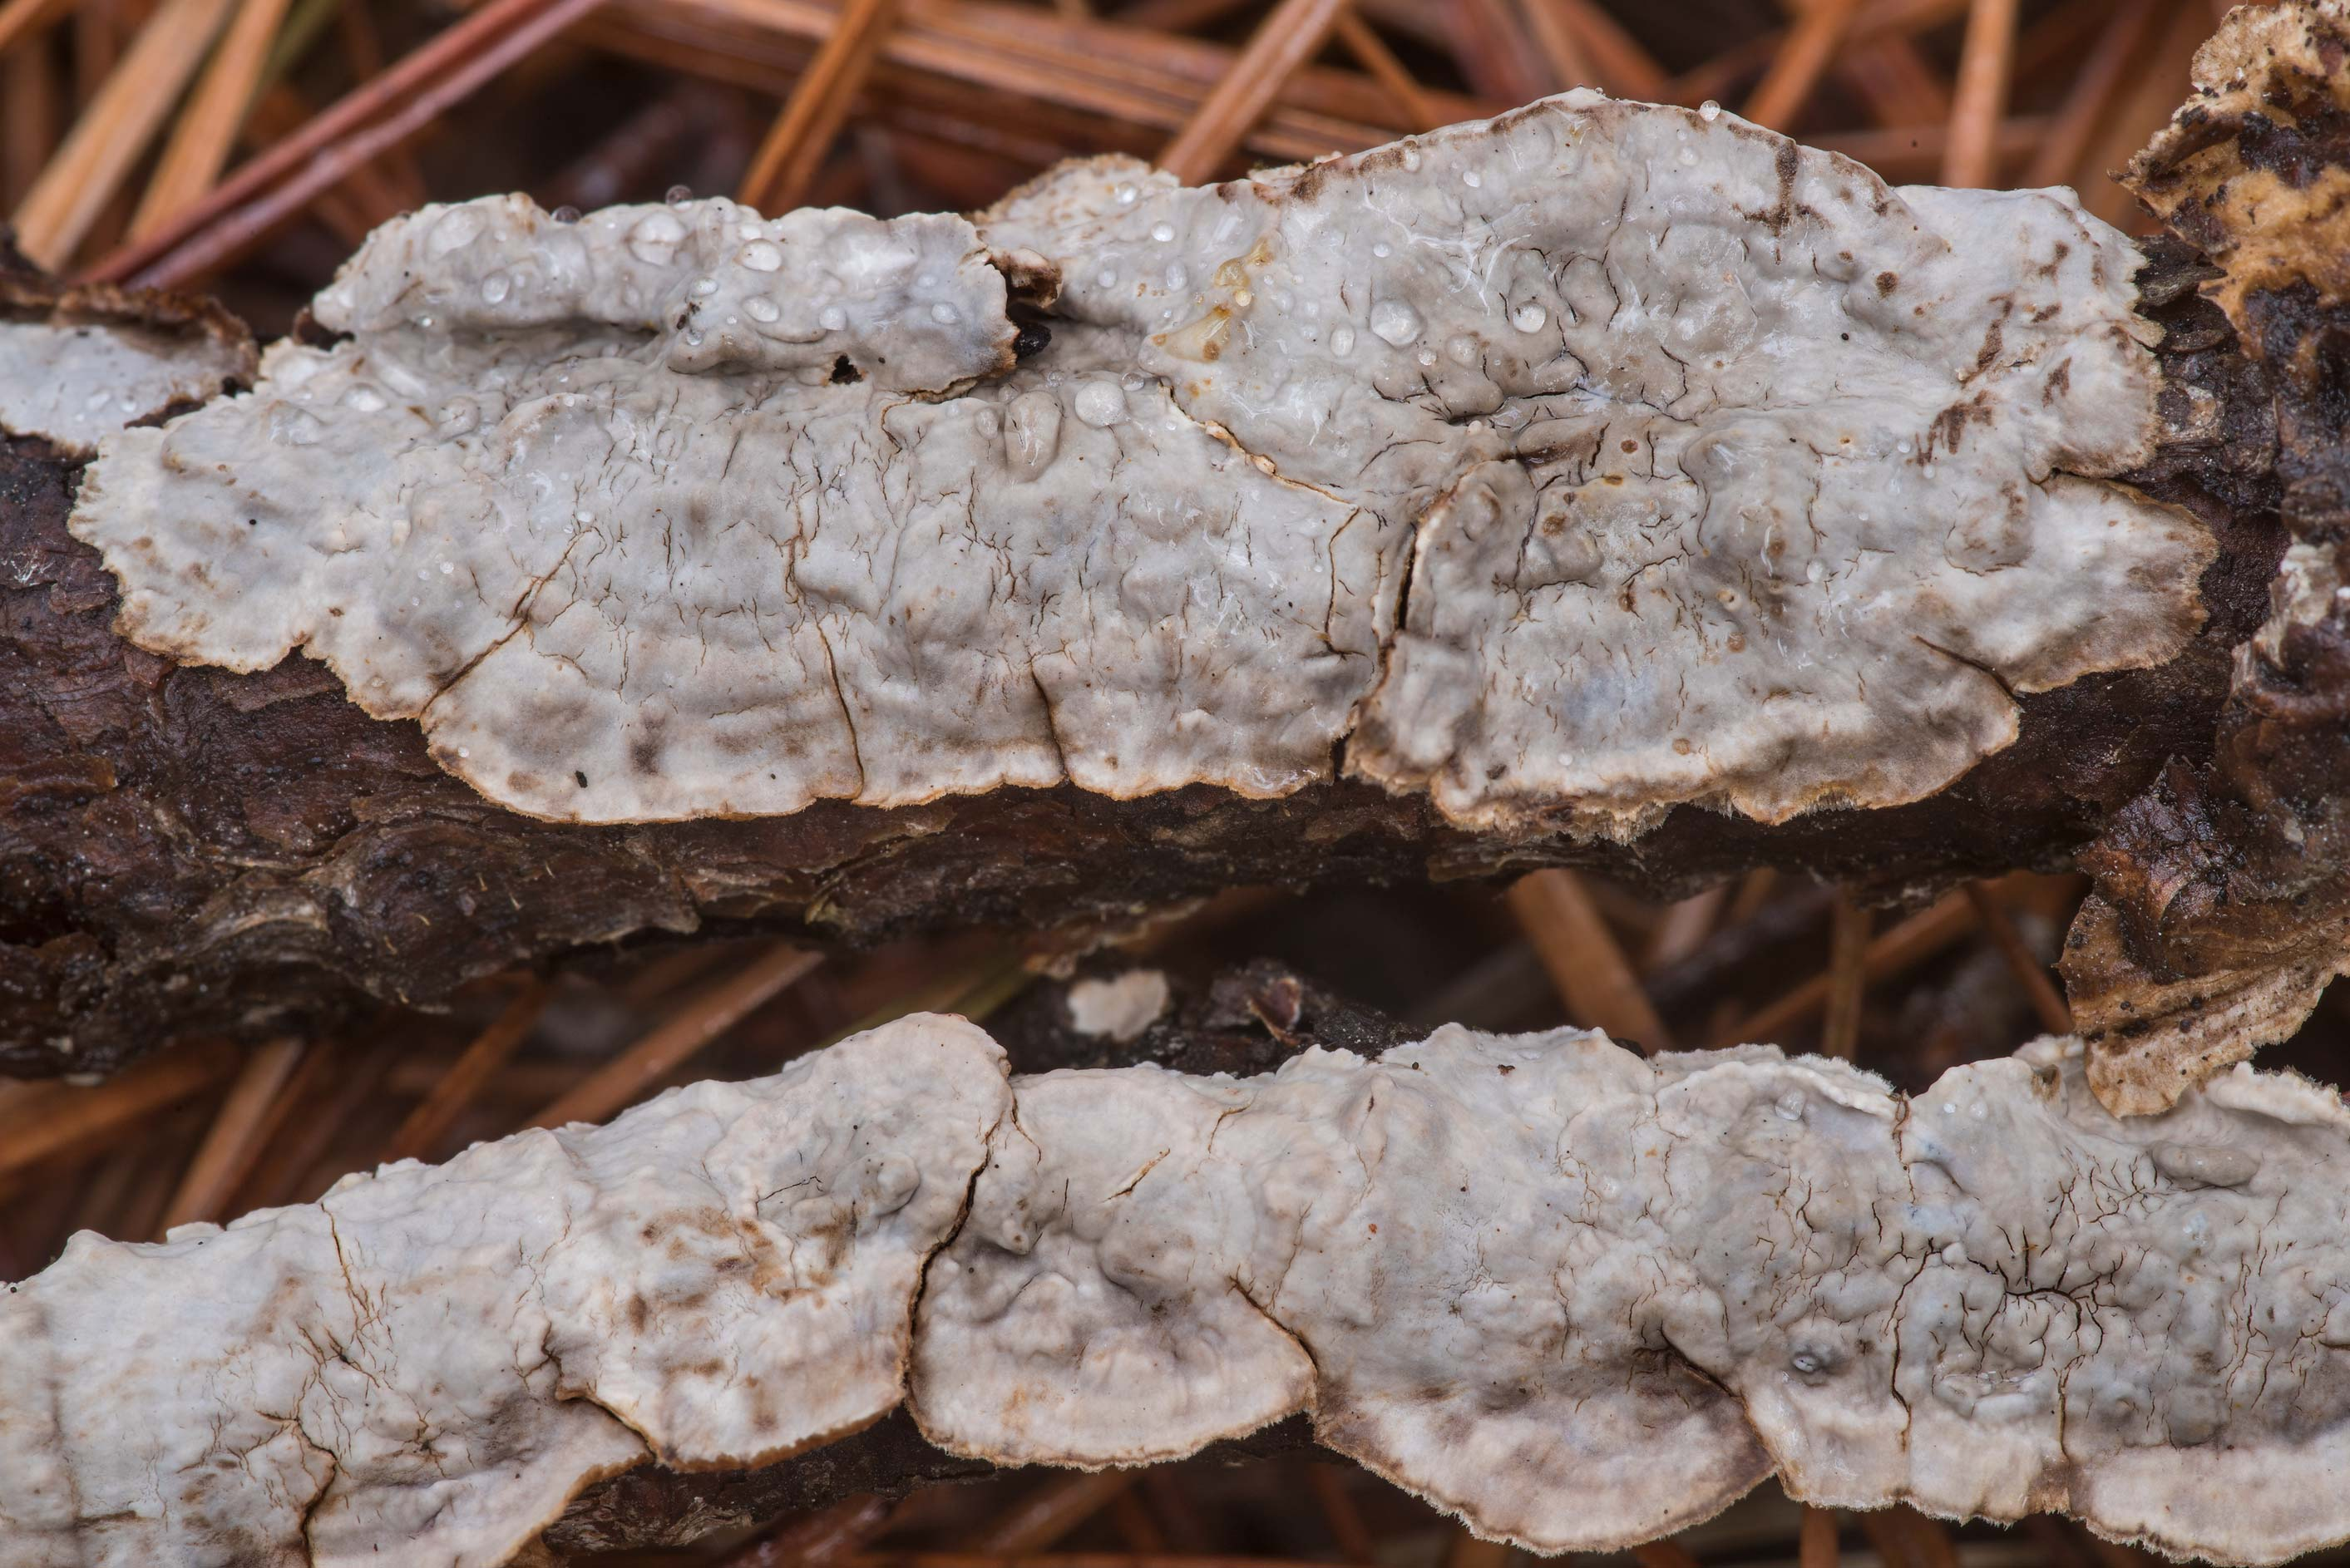 Some corticioid (crust) Stereum like fungus on...National Forest near Huntsville. Texas